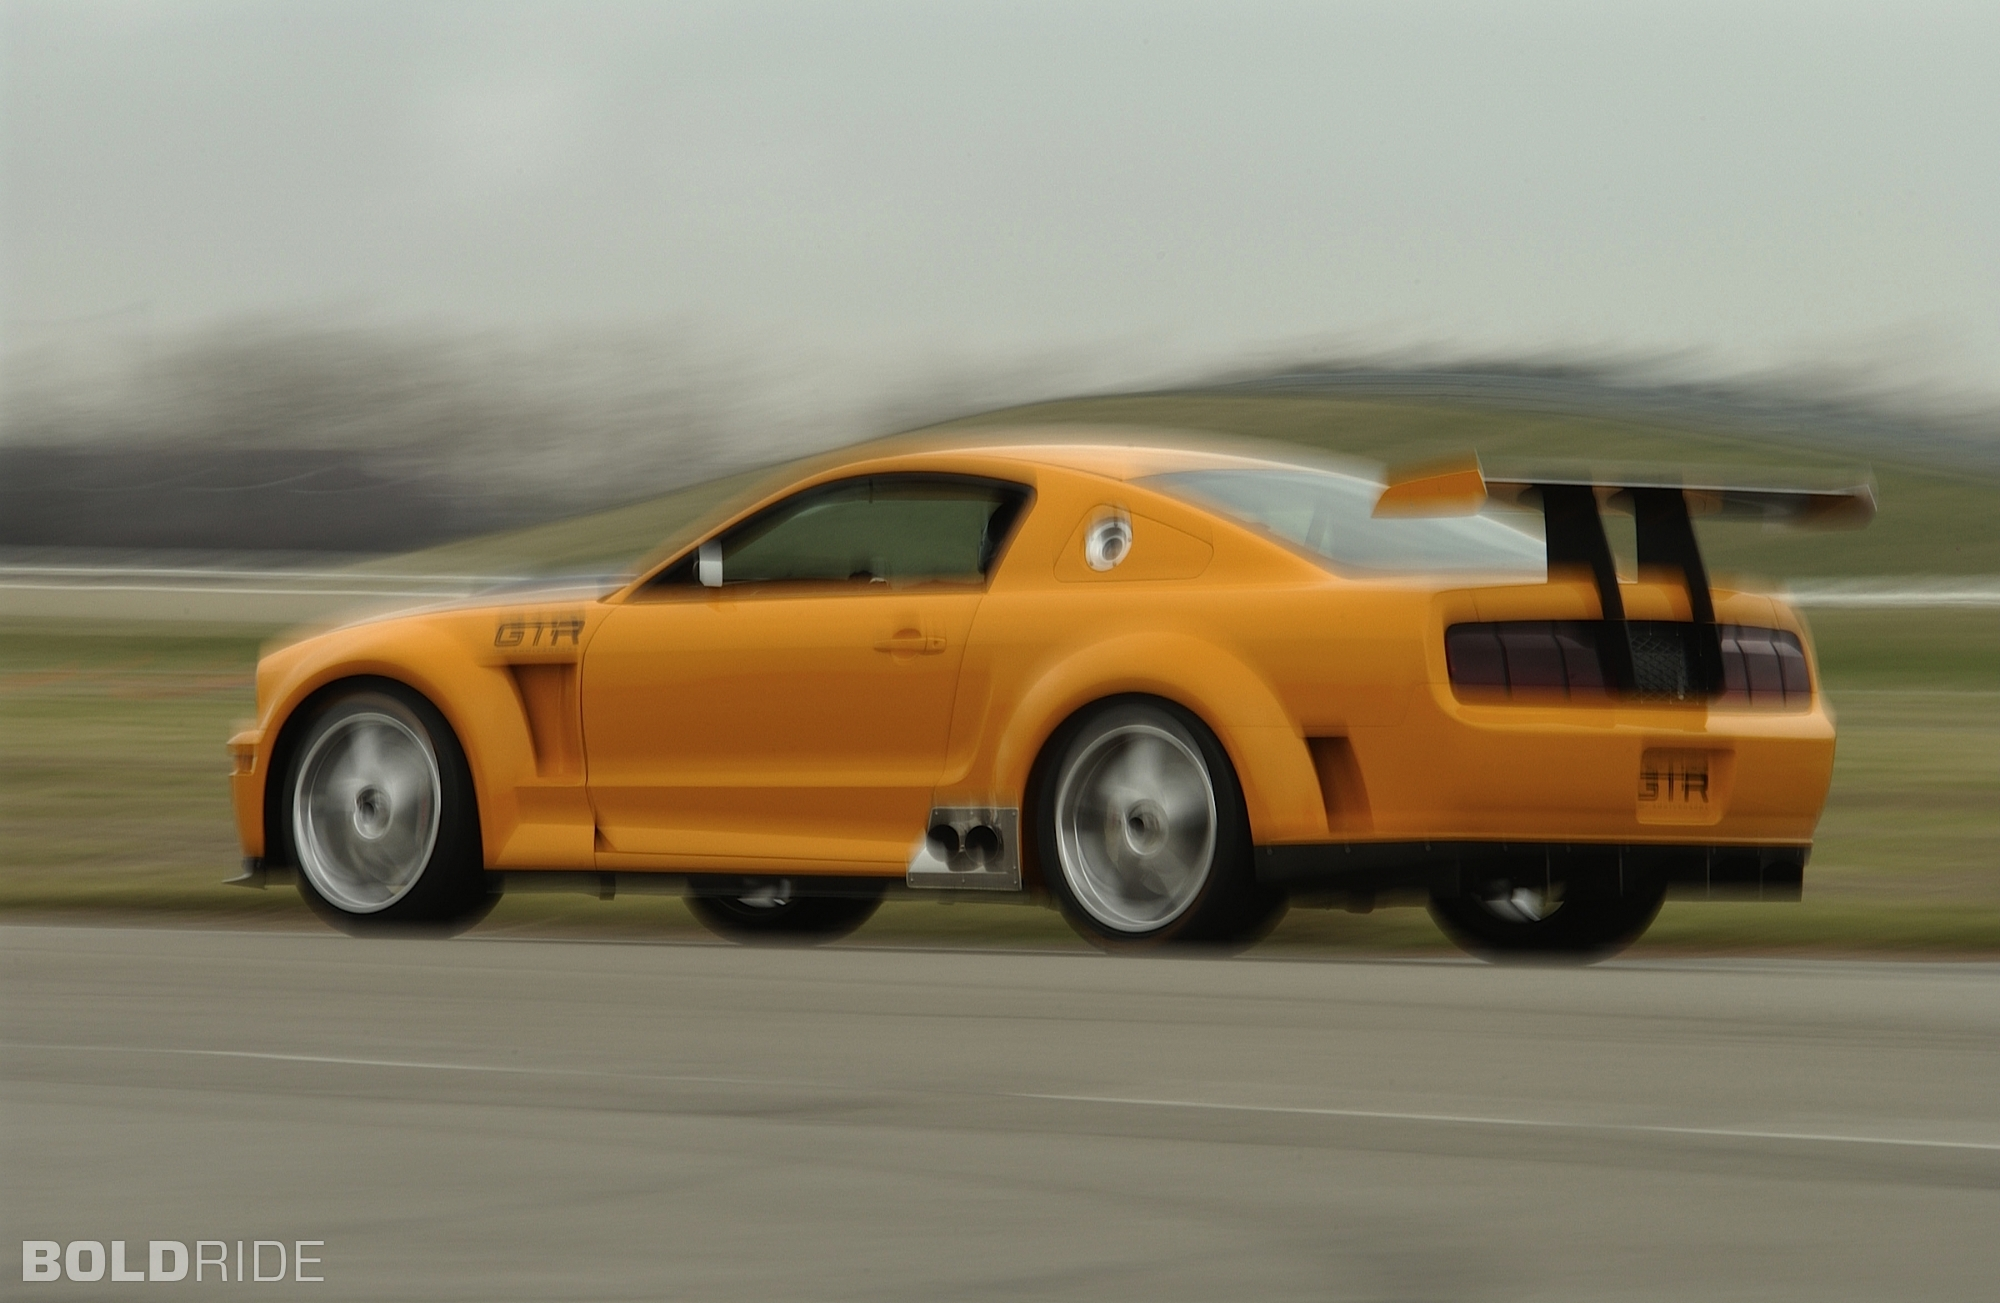 2004 Ford Mustang GTR 40th Anniversary Concept photo - 2